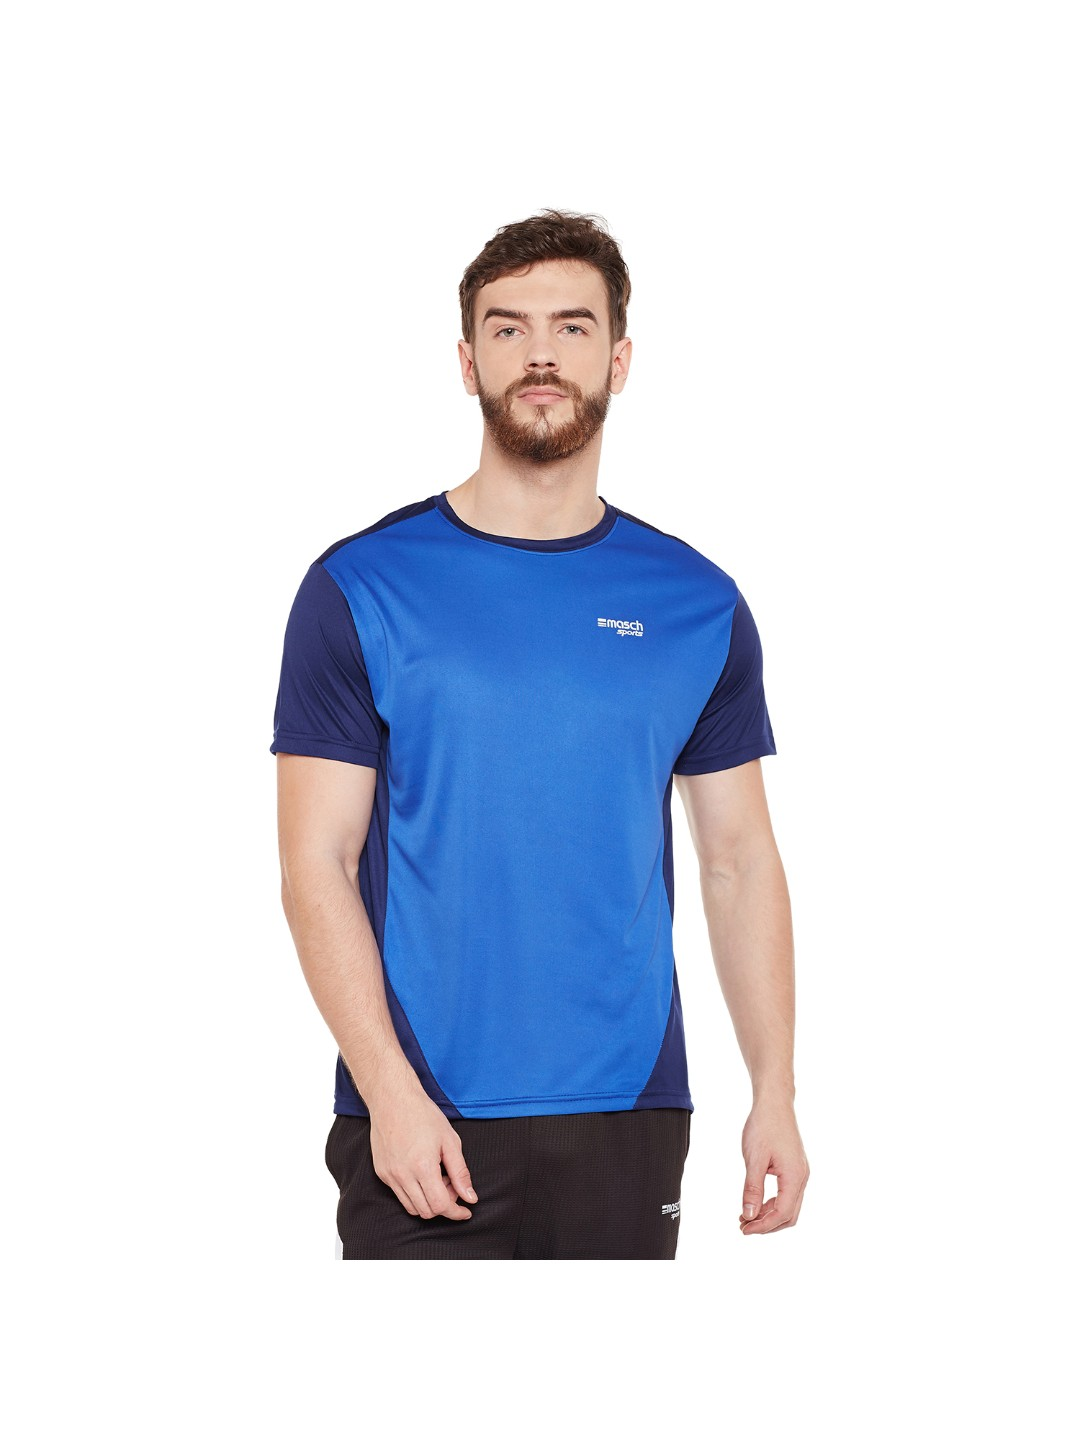 Masch Sports Blue Polyester Round Neck Men T-Shirt